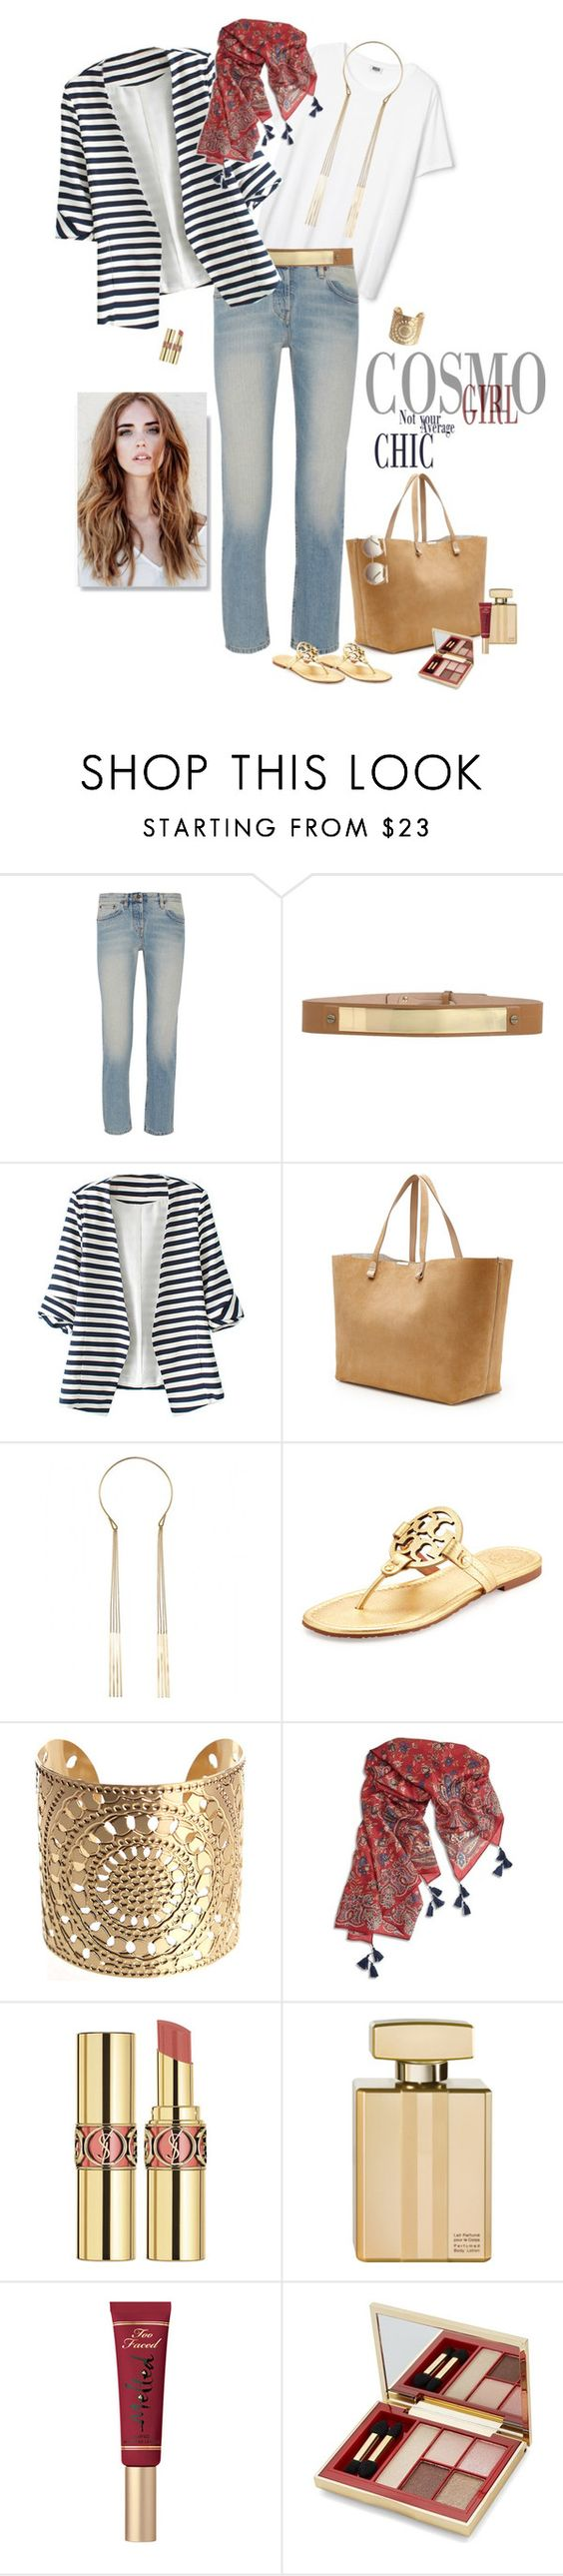 """""""1296"""" by m-lane ❤ liked on Polyvore featuring The Row, Jo No Fui, WithChic, Victoria Beckham, By Malene Birger, Tory Burch, Lucky Brand, Yves Saint Laurent, Gucci and Too Faced Cosmetics"""